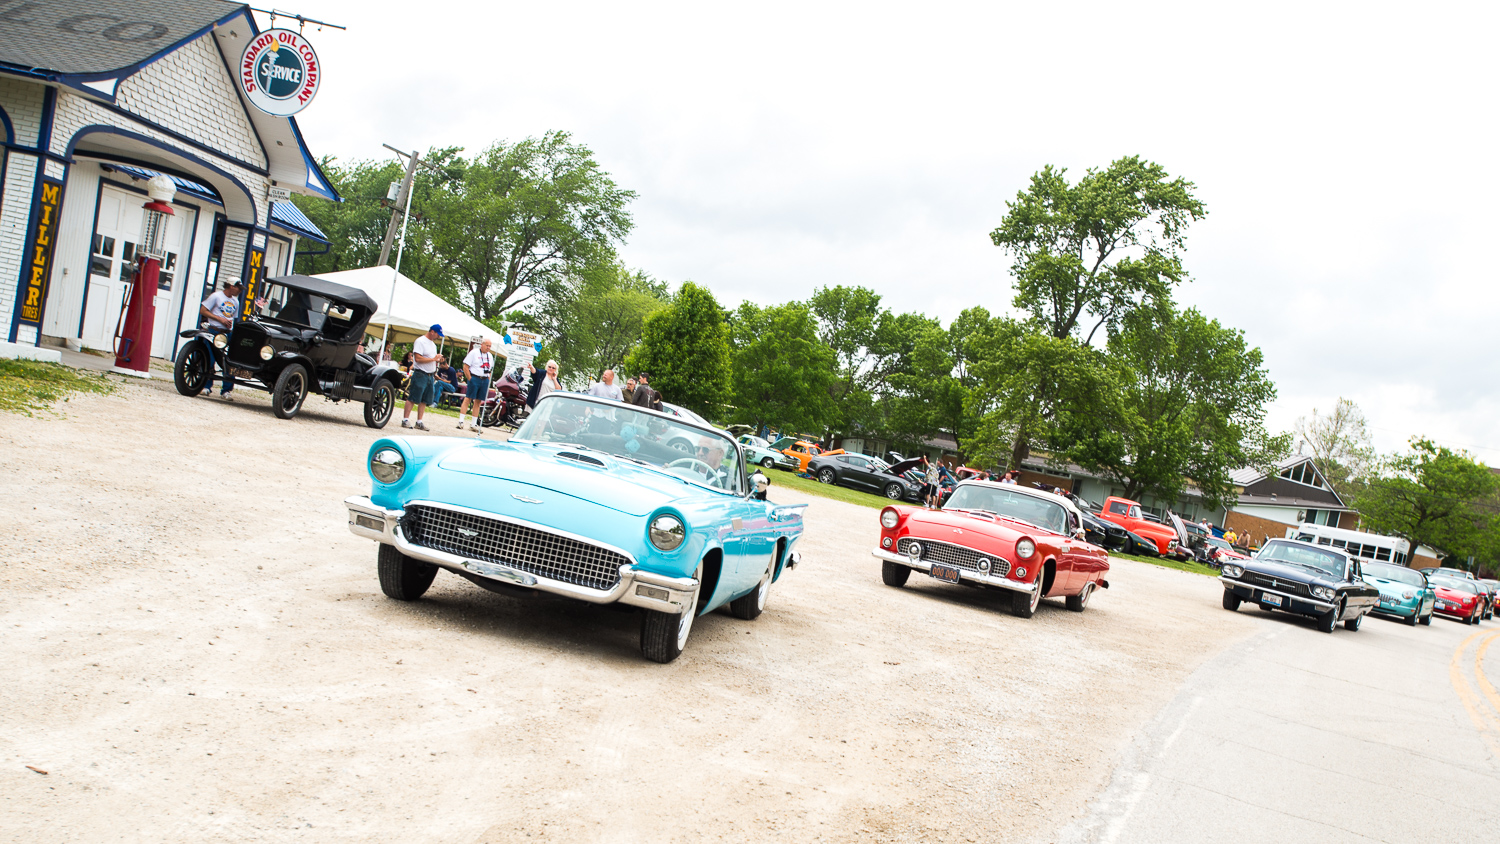 A String of Ford Thunderbirds arriving at The Car Show Benefit.